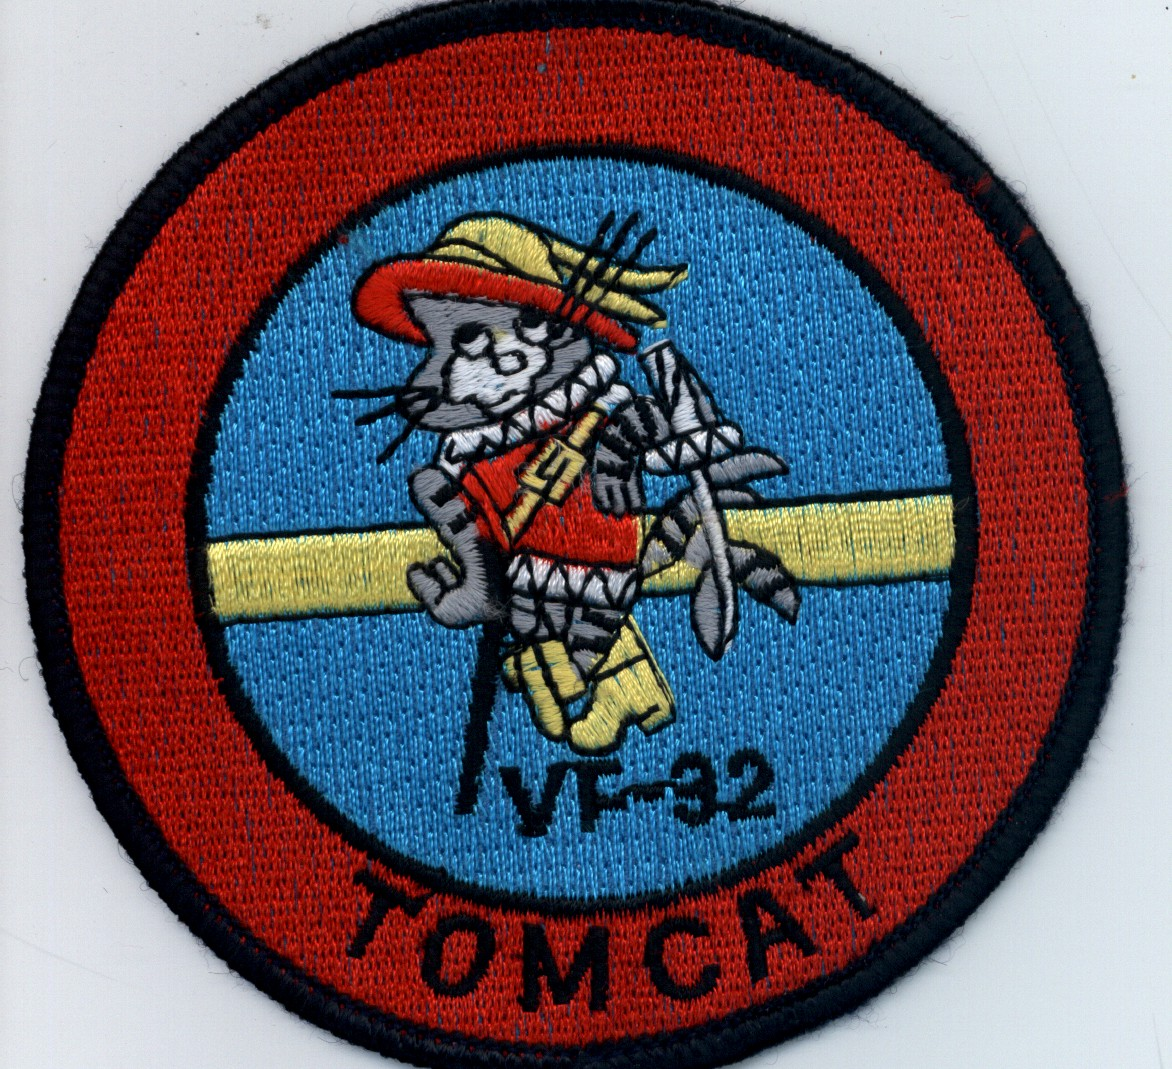 United States Navy VF-32 Tomcat Fighter Squadron patch.